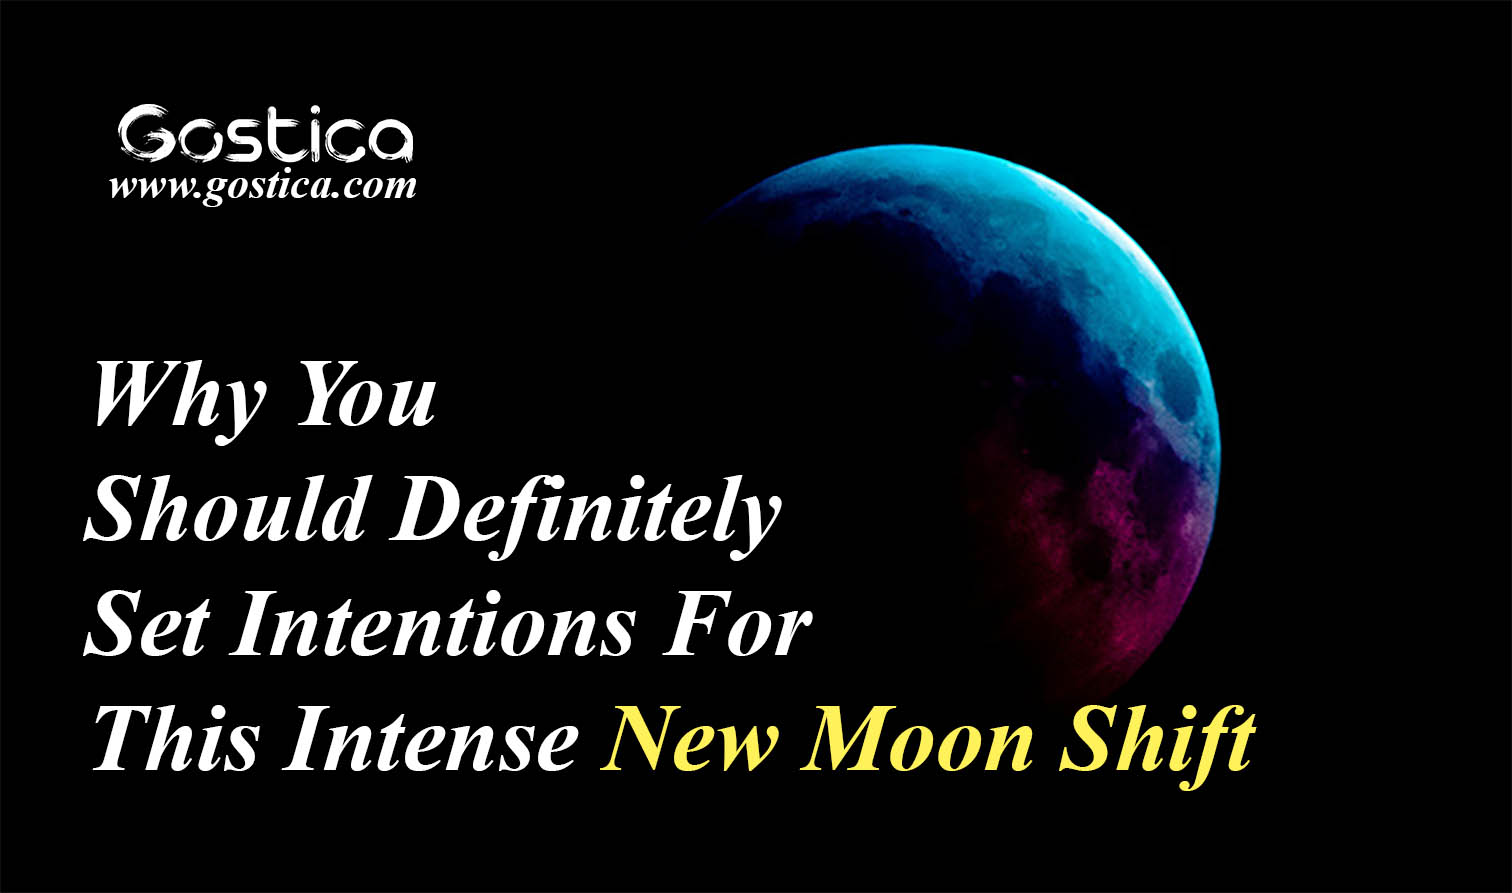 Why-You-Should-Definitely-Set-Intentions-For-This-Intense-New-Moon-Shift.jpg